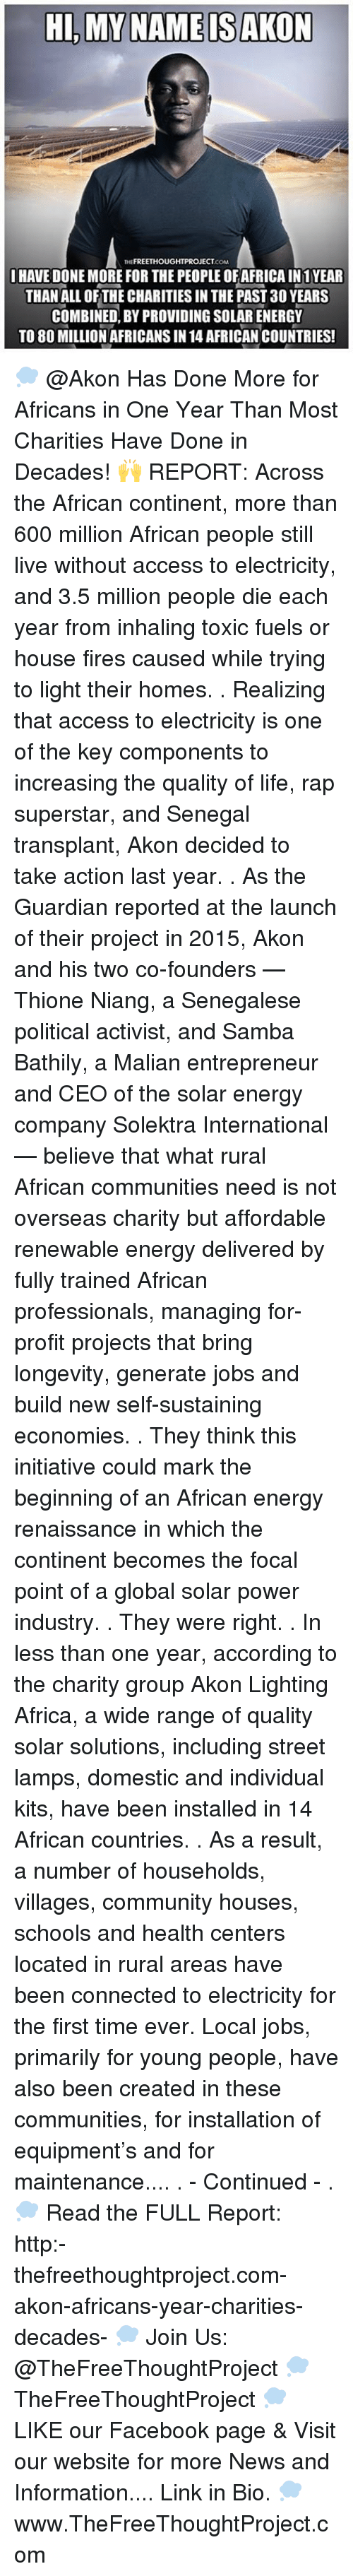 Initialism: HI, MY NAME IS AKON  FREETHOUGHTPROJECT  I HAVE DONE MORE FOR THE PEOPLEOFAFRICAIN1 YEAR  THAN ALL OF THE CHARITIES IN THE PAST 30 YEARS  COMBINED BY PROVIDING SOLAR ENERGY  TO 80 MILLION AFRICANS IN 14 AFRICAN COUNTRIES! 💭 @Akon Has Done More for Africans in One Year Than Most Charities Have Done in Decades! 🙌 REPORT: Across the African continent, more than 600 million African people still live without access to electricity, and 3.5 million people die each year from inhaling toxic fuels or house fires caused while trying to light their homes. . Realizing that access to electricity is one of the key components to increasing the quality of life, rap superstar, and Senegal transplant, Akon decided to take action last year. . As the Guardian reported at the launch of their project in 2015, Akon and his two co-founders — Thione Niang, a Senegalese political activist, and Samba Bathily, a Malian entrepreneur and CEO of the solar energy company Solektra International — believe that what rural African communities need is not overseas charity but affordable renewable energy delivered by fully trained African professionals, managing for-profit projects that bring longevity, generate jobs and build new self-sustaining economies. . They think this initiative could mark the beginning of an African energy renaissance in which the continent becomes the focal point of a global solar power industry. . They were right. . In less than one year, according to the charity group Akon Lighting Africa, a wide range of quality solar solutions, including street lamps, domestic and individual kits, have been installed in 14 African countries. . As a result, a number of households, villages, community houses, schools and health centers located in rural areas have been connected to electricity for the first time ever. Local jobs, primarily for young people, have also been created in these communities, for installation of equipment's and for maintenance.... . - Continued - . 💭 Read t